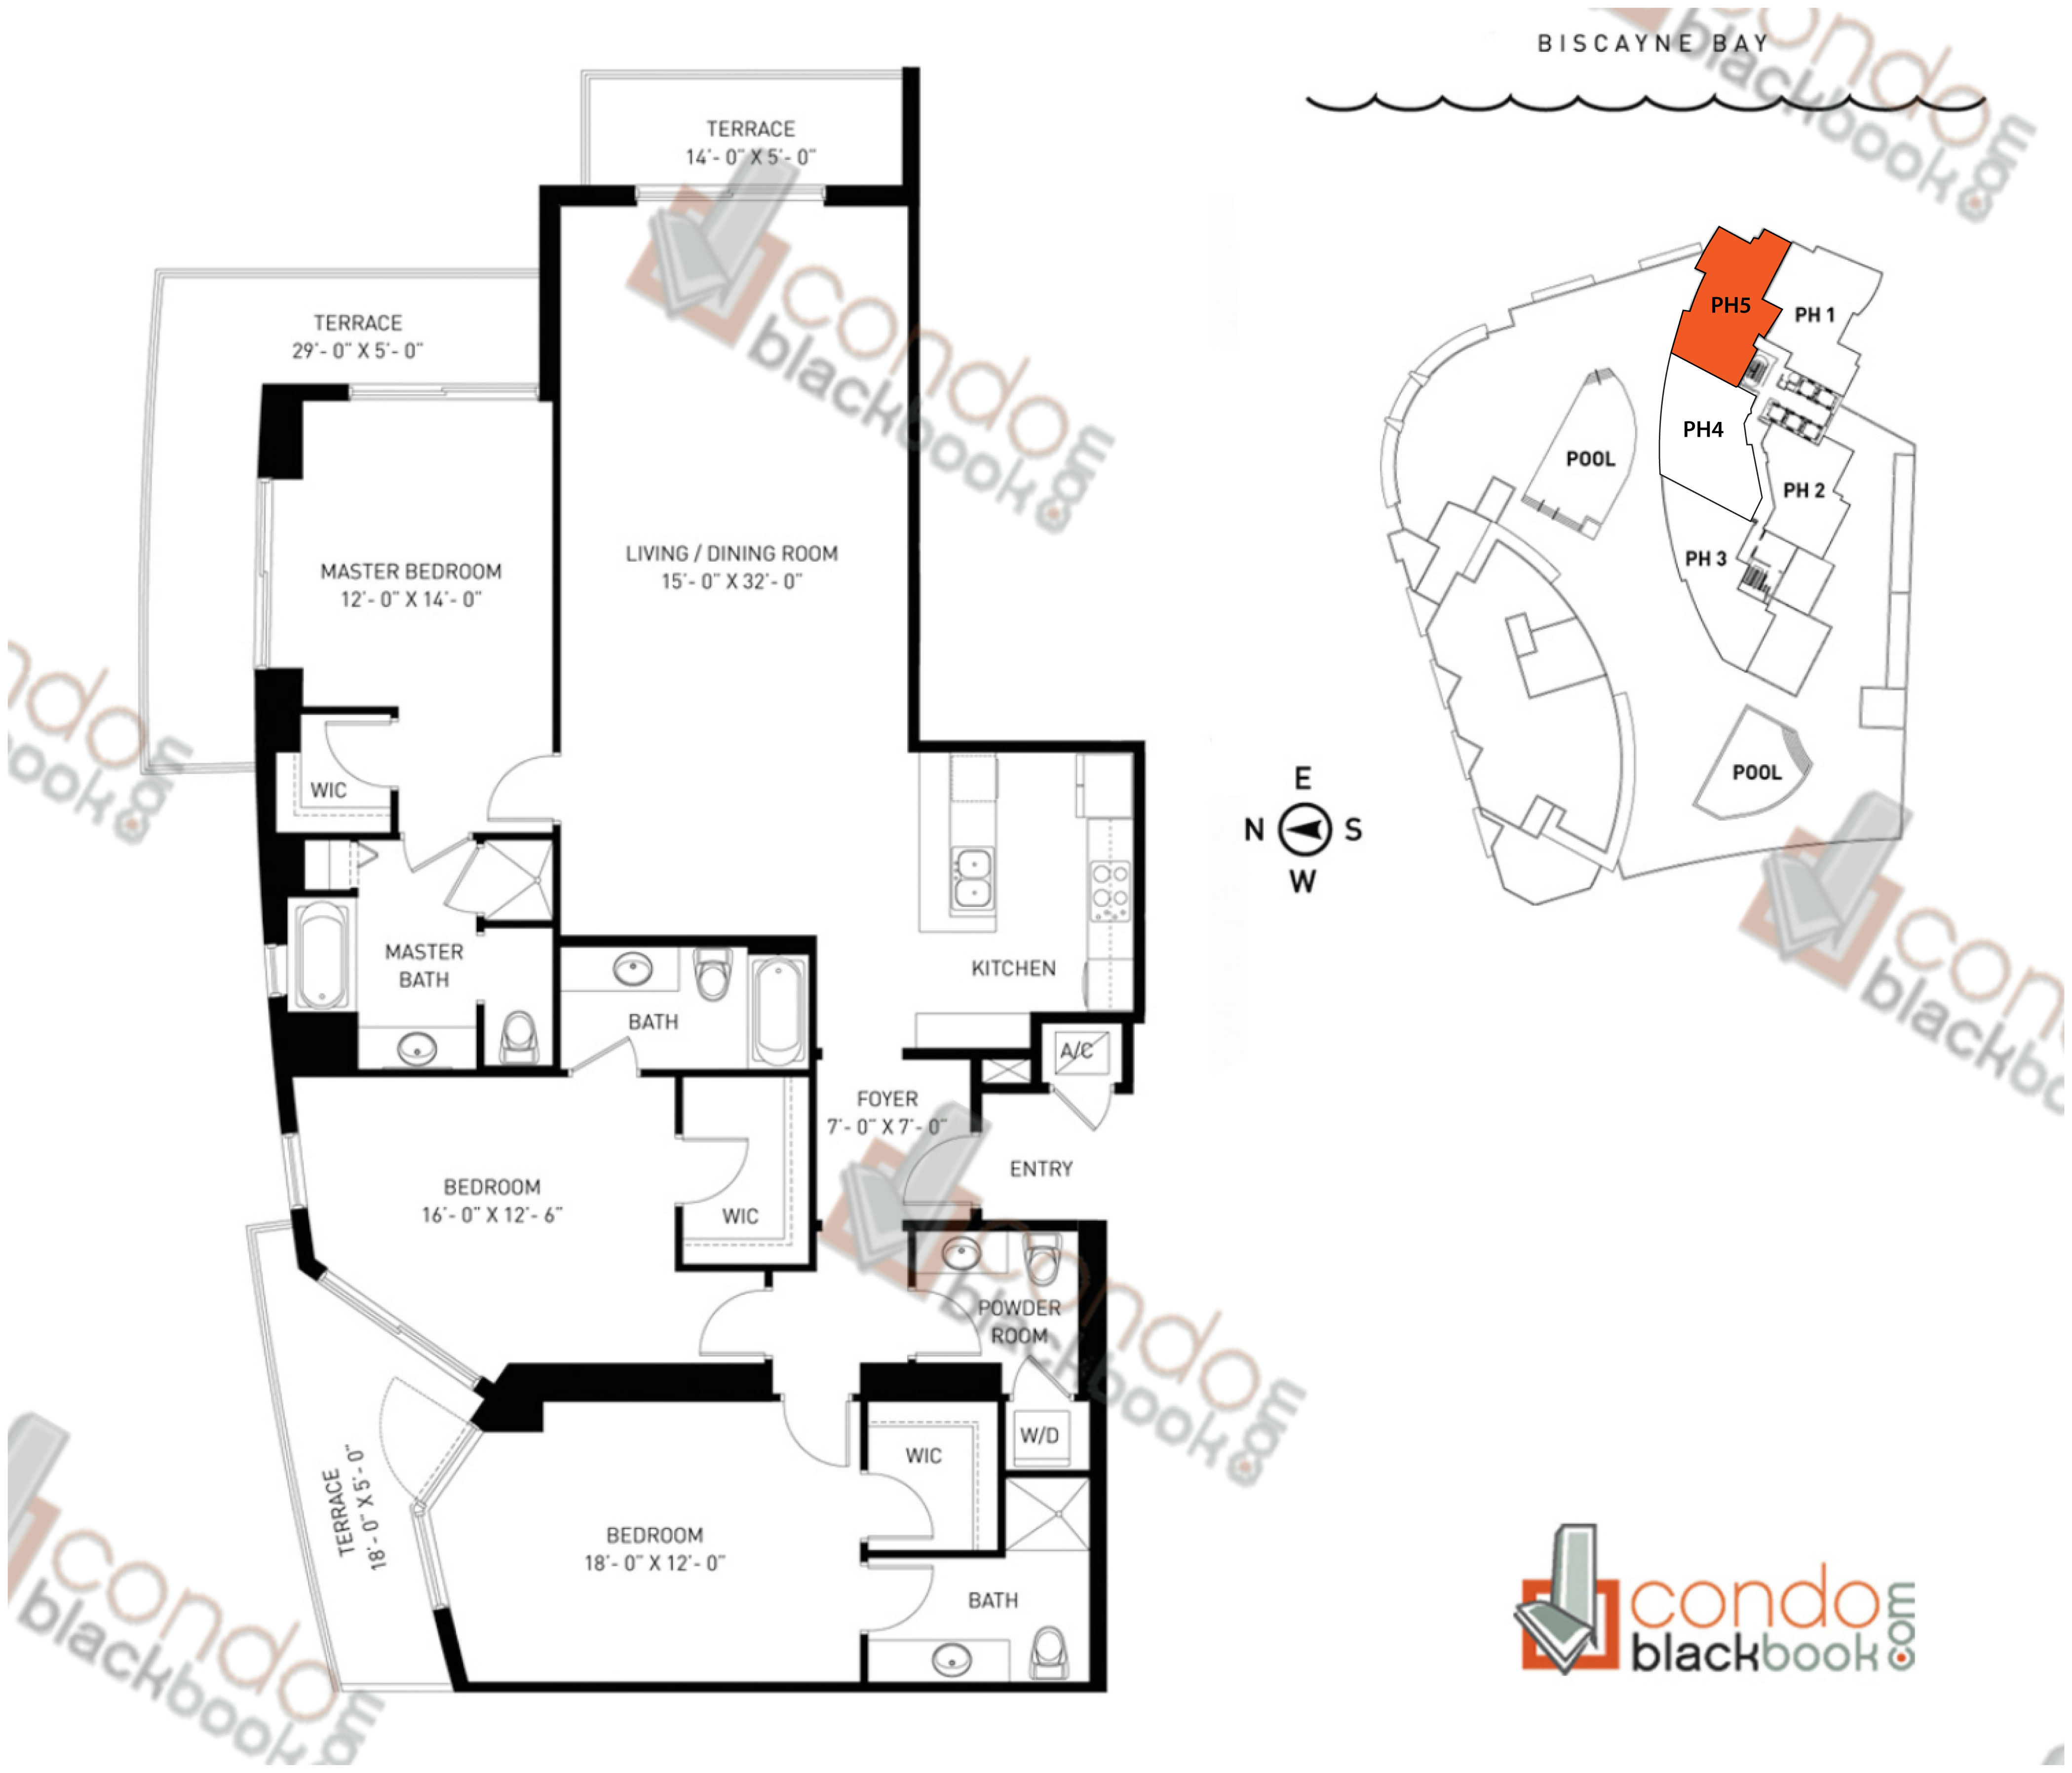 Floor plan for Quantum on the Bay Edgewater Miami, model PH_5, line South Tower - 02, 3/3.5 bedrooms, 1,970 sq ft